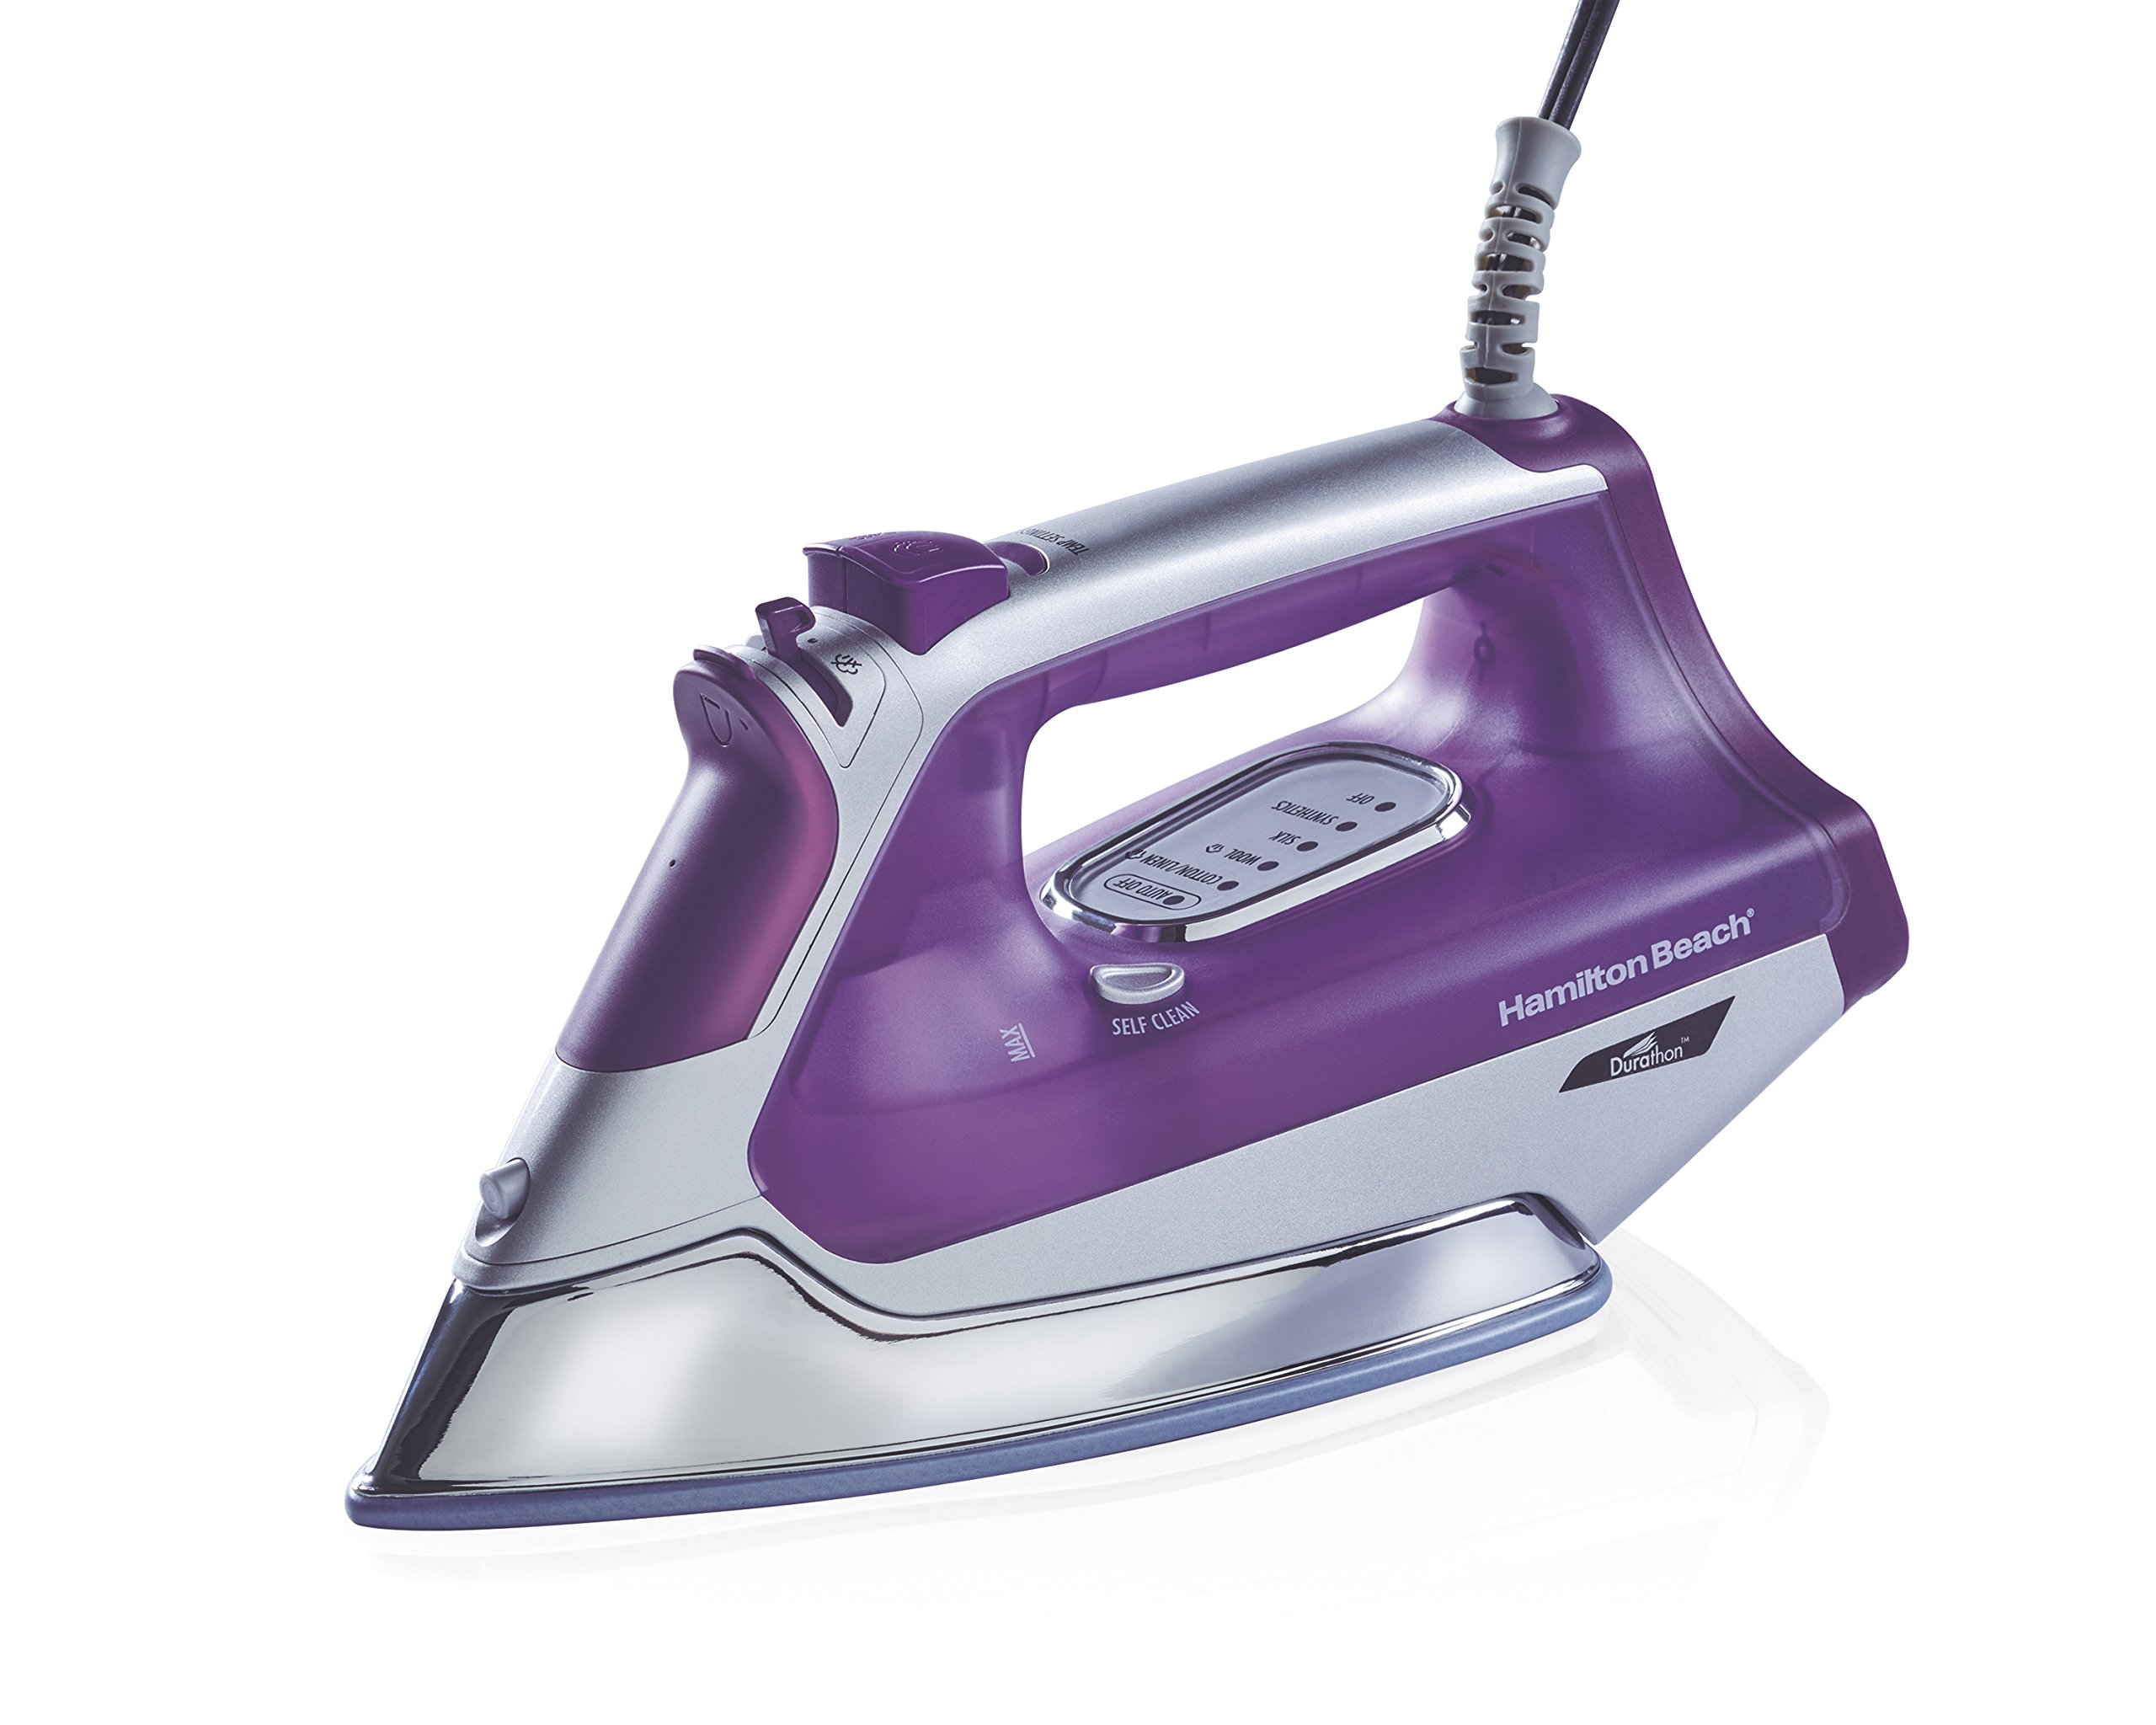 Hamilton Beach Durathon Steam Iron, 3-Way Auto Shutoff, Purple